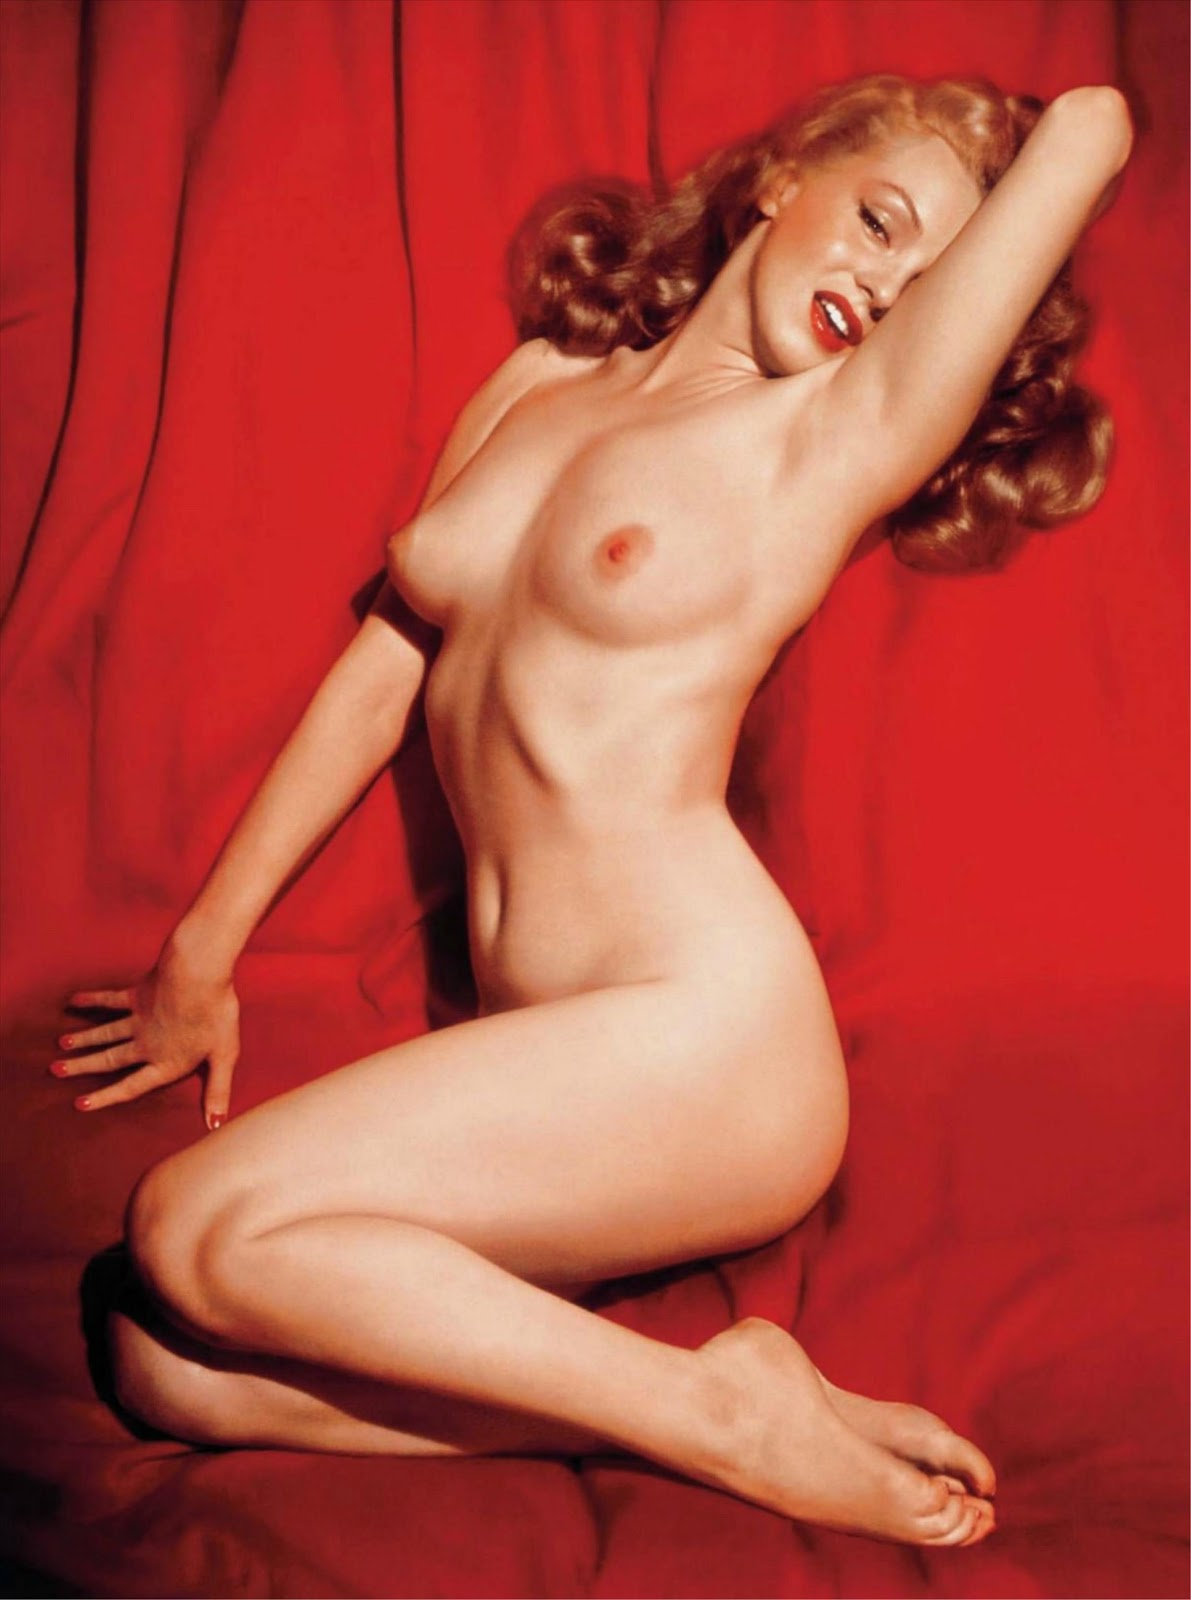 Nudes early marilyn monroe